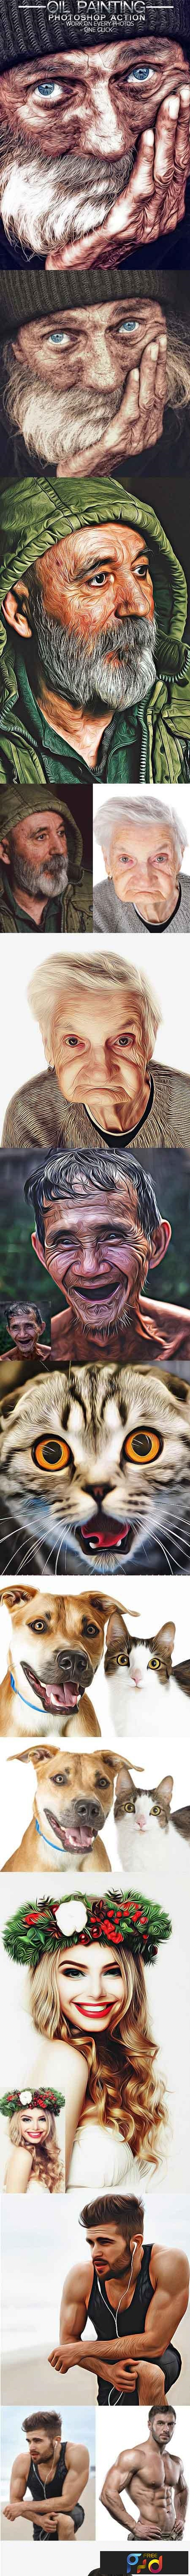 Oil Painting Photoshop Action 22982188 1